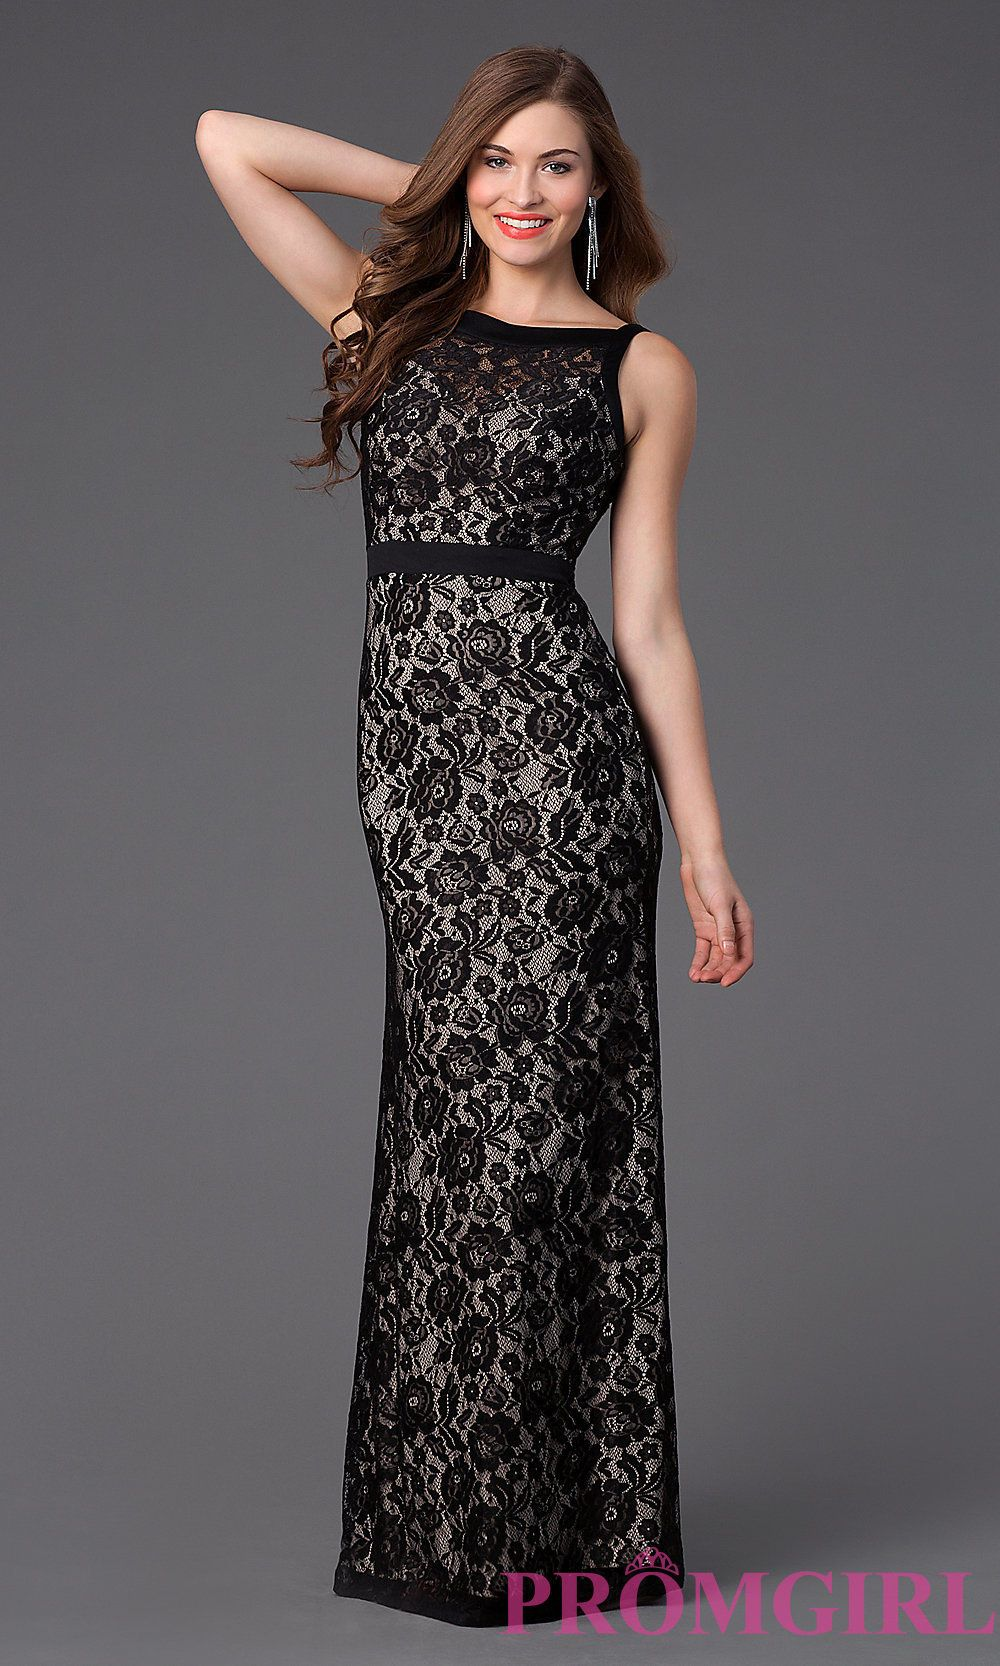 Image result for long black floral lace gown clothes pinterest